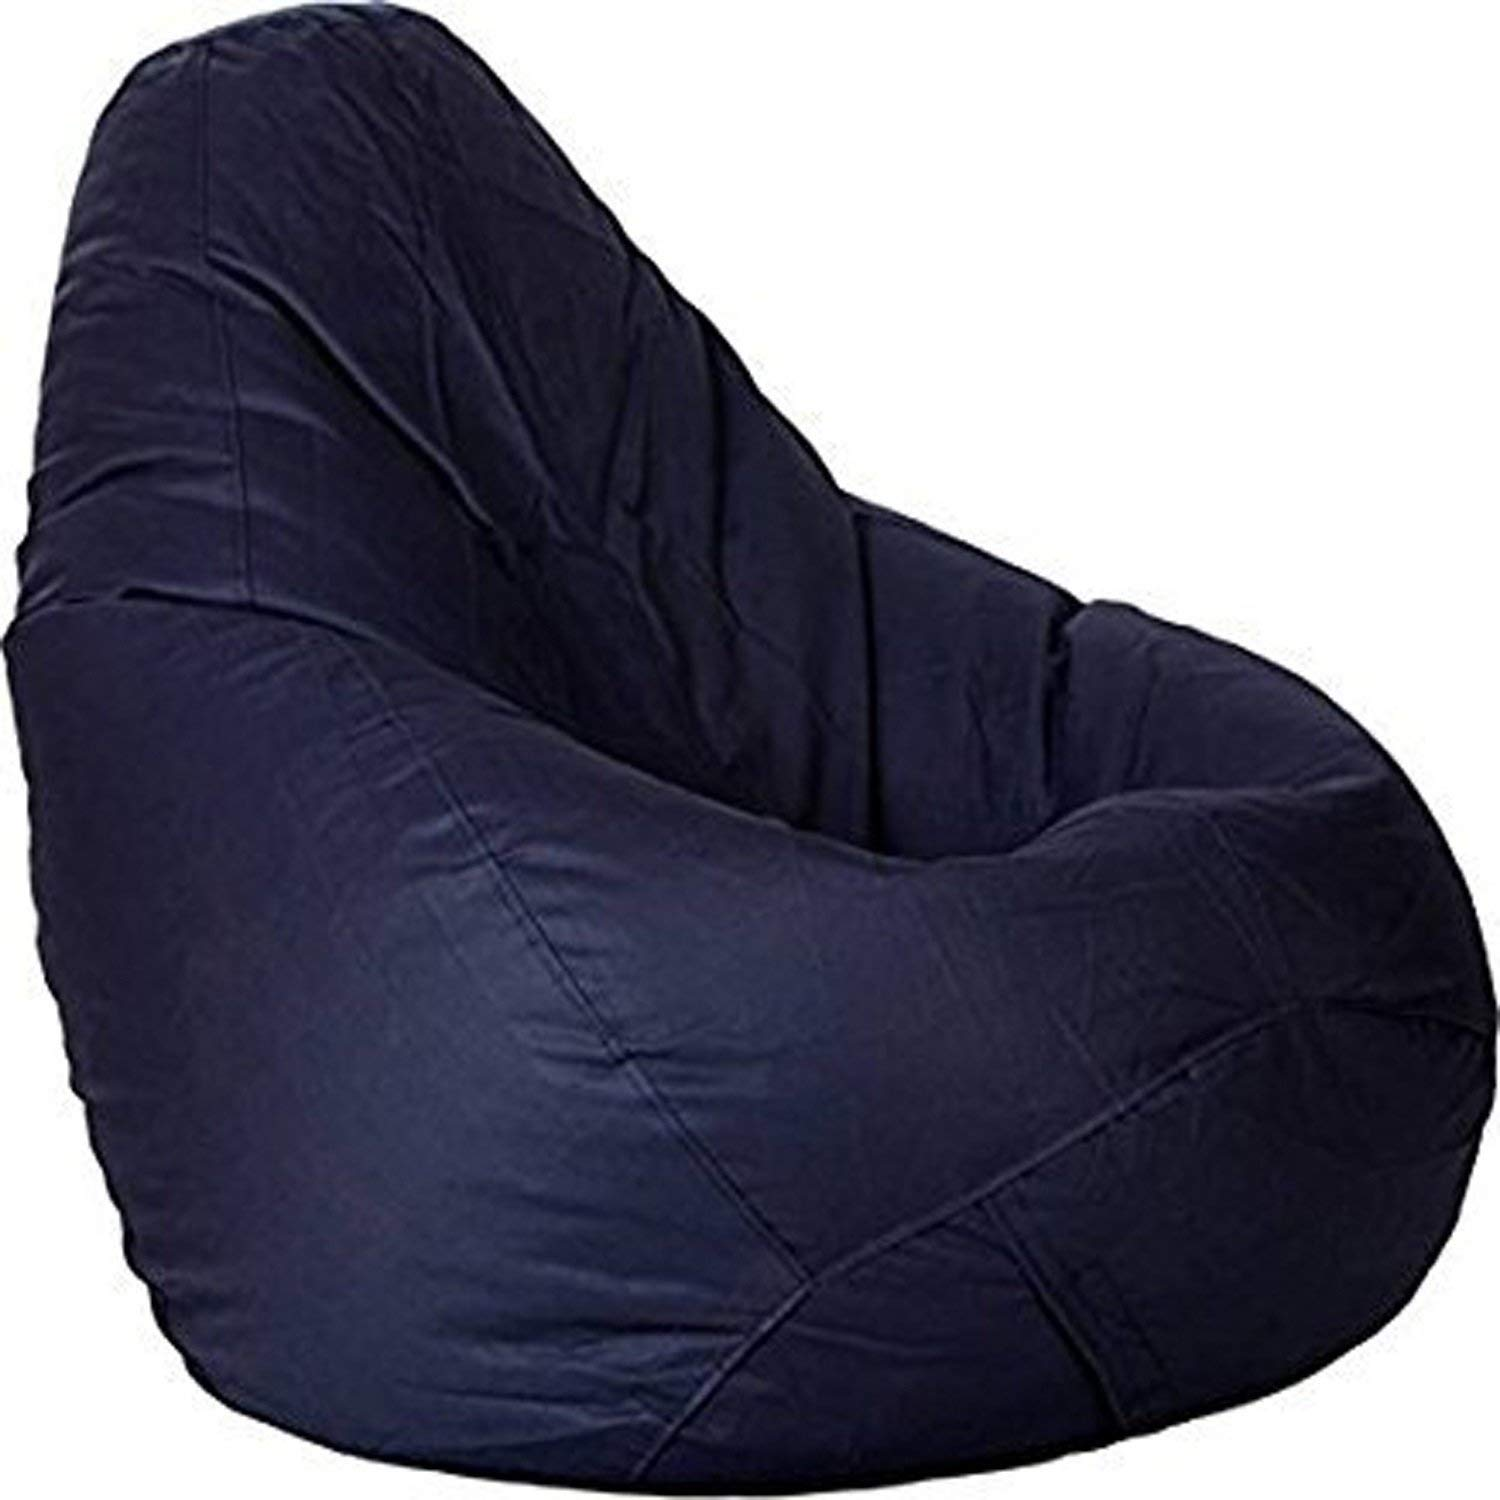 Lofster Bean Bag